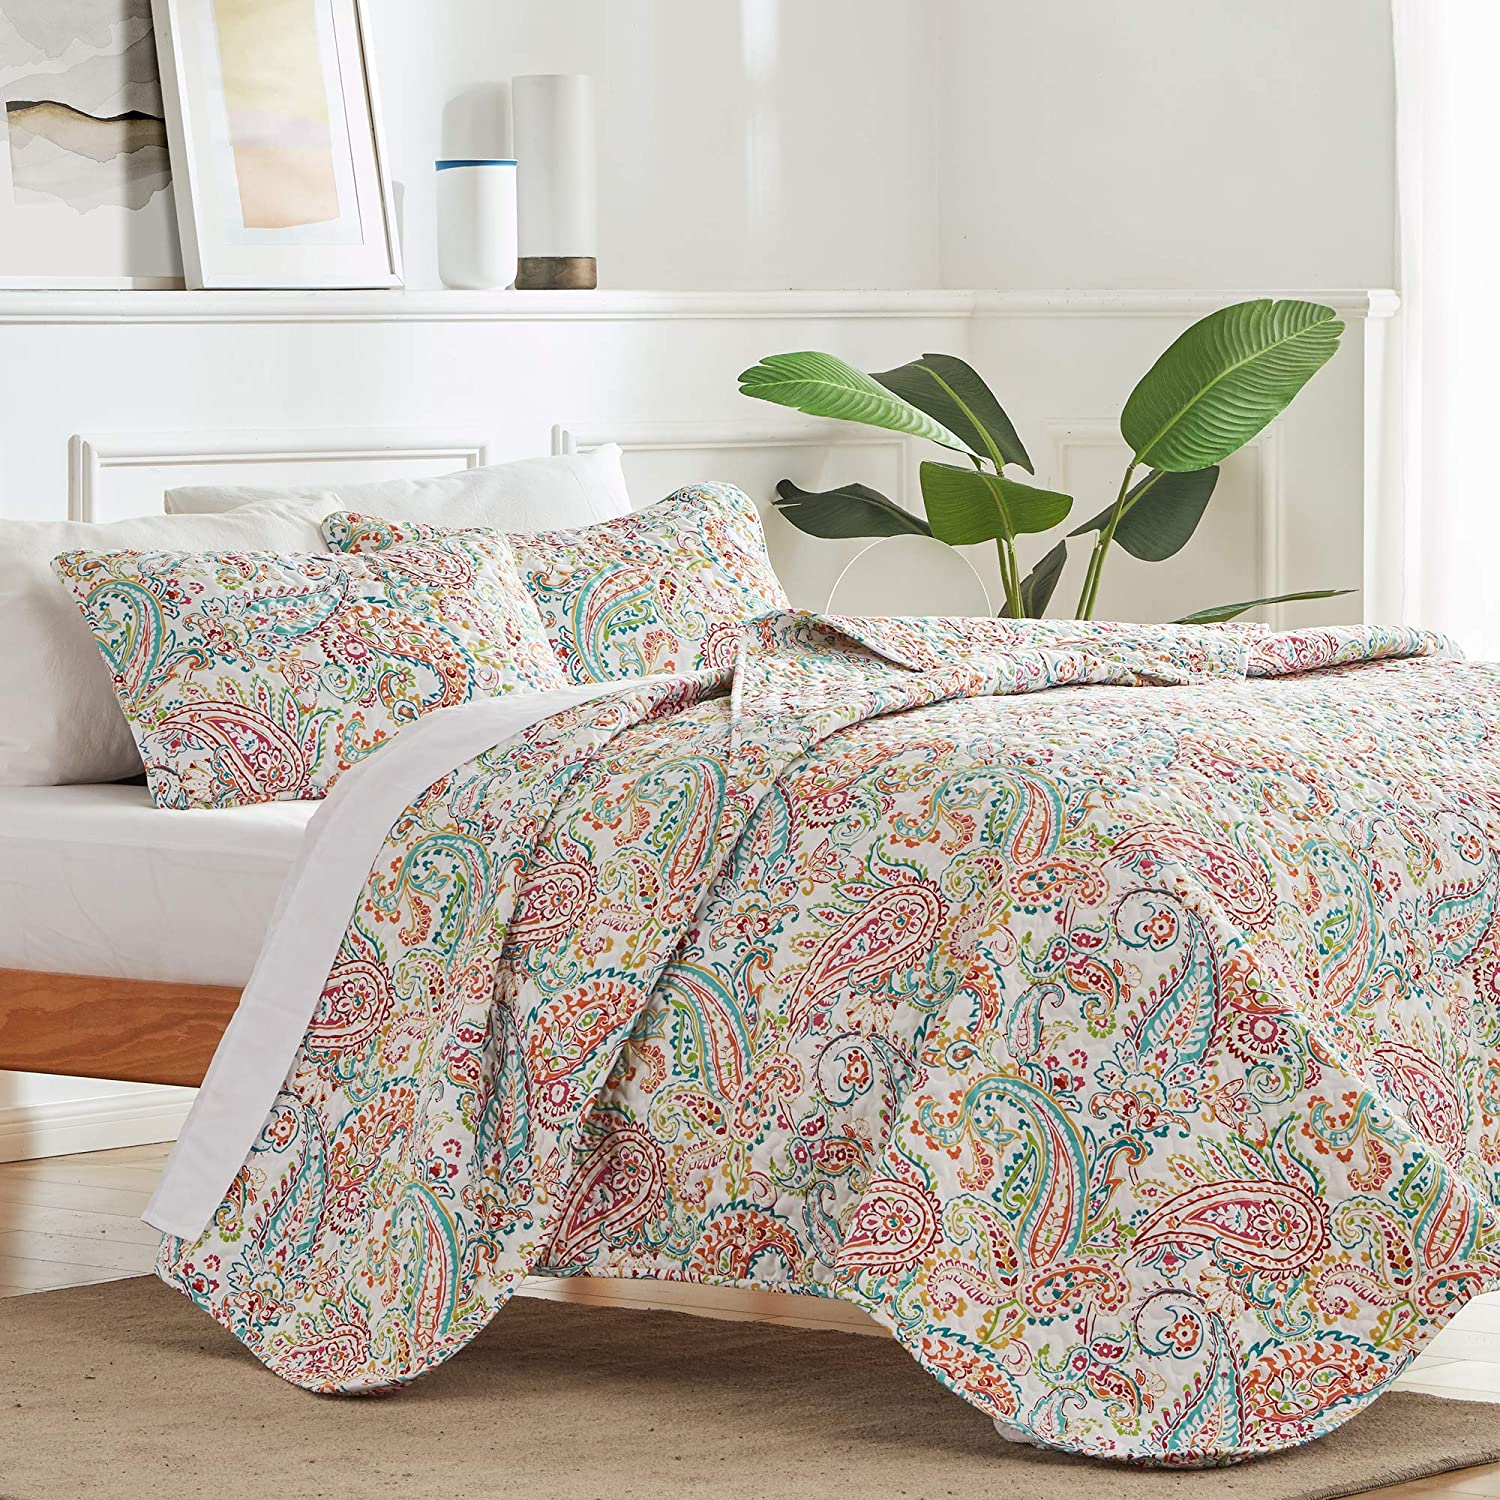 SLEEP ZONE 3-Piece Printed Quilt Set - Full/Queen Size (2 Pillow Shams) - Lightweight Reversible Bedding Coverlet Set for All Season (Classic Paisley Pattern)